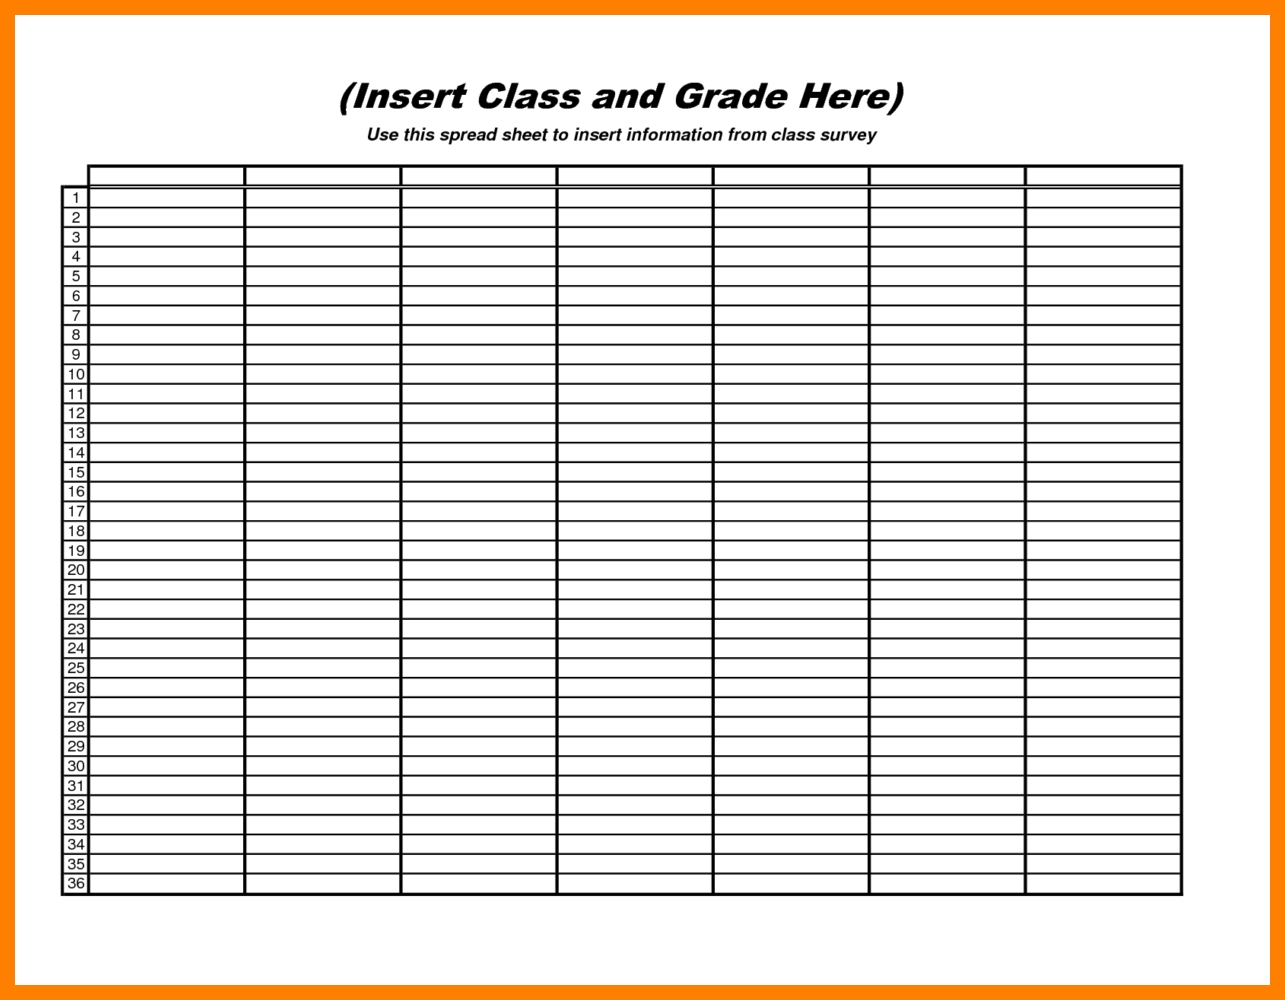 Blank Spreadsheet To Print With Blank Spreadsheet Printable Bunch Ideas For Templates Of Sheets To